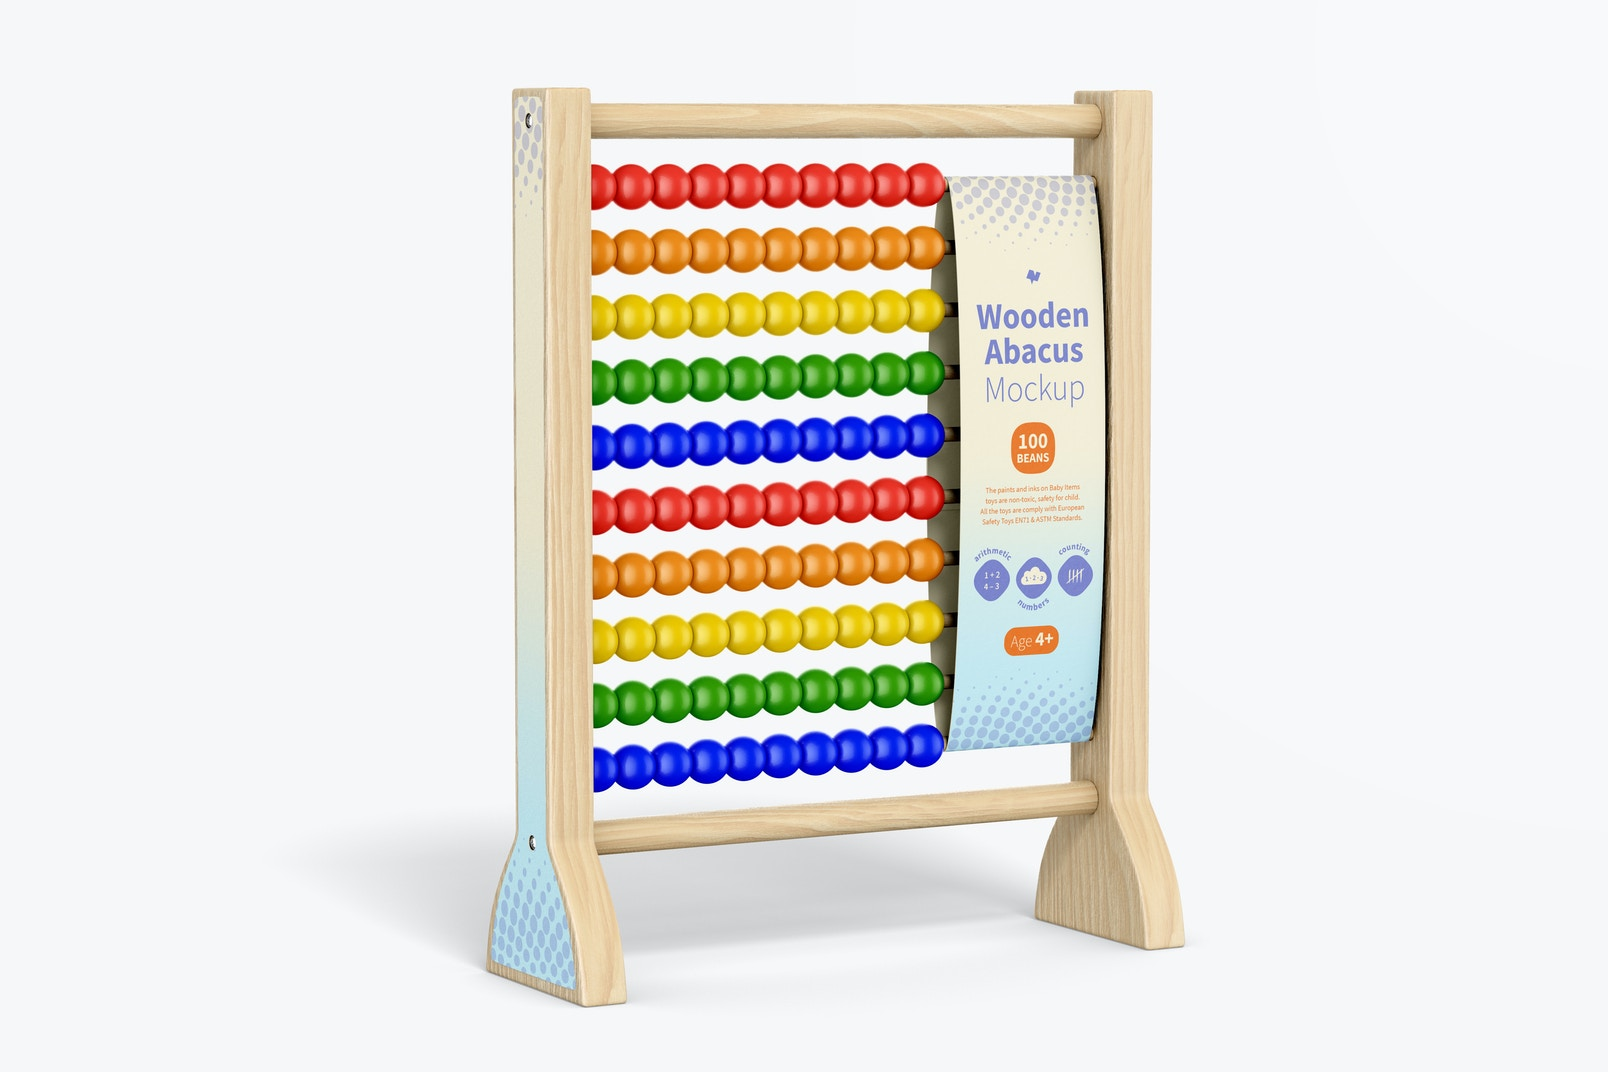 Wooden Abacus Mockup